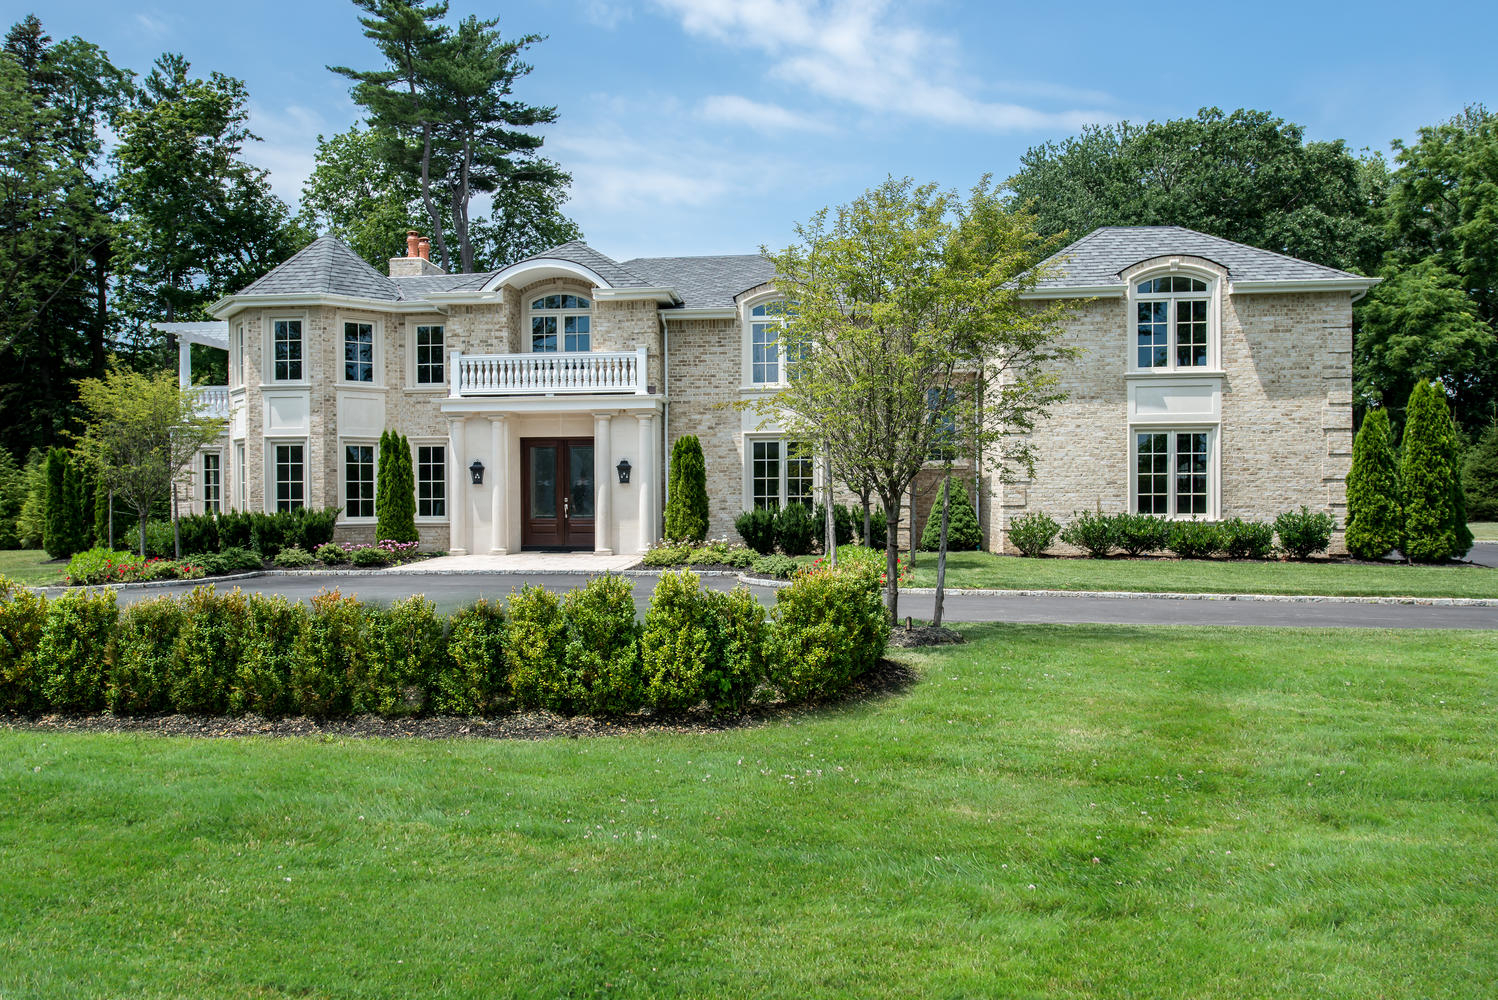 Floral park ny homes for sale long island real estate for Long island estates for sale